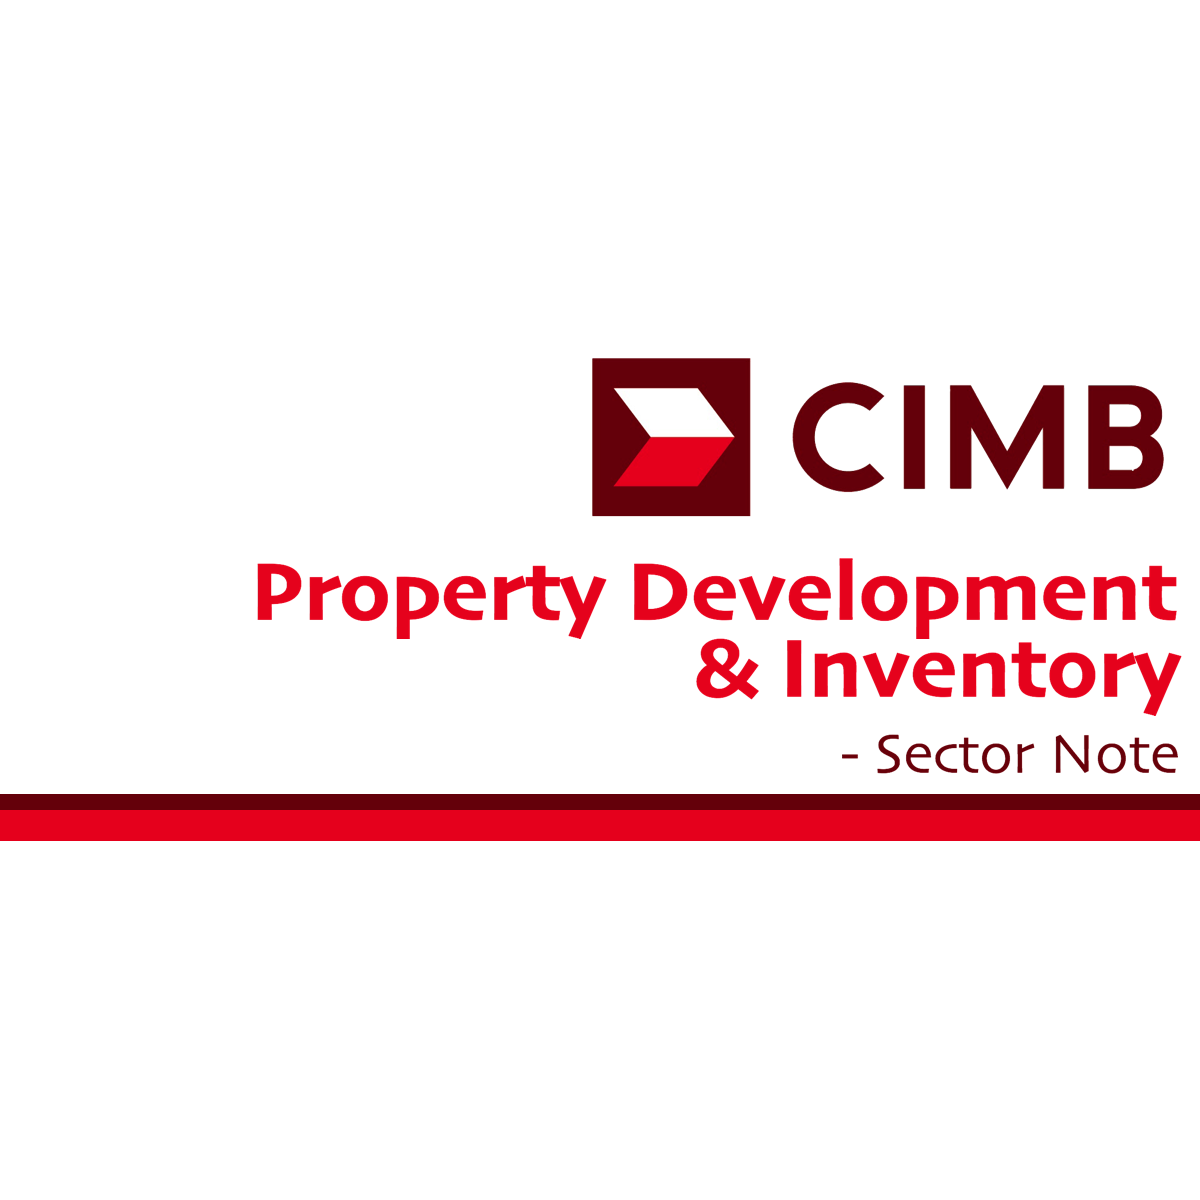 Property Development & Inventory - CGS-CIMB Research 2018-06-27: Steady Private Housing Supply In 2h